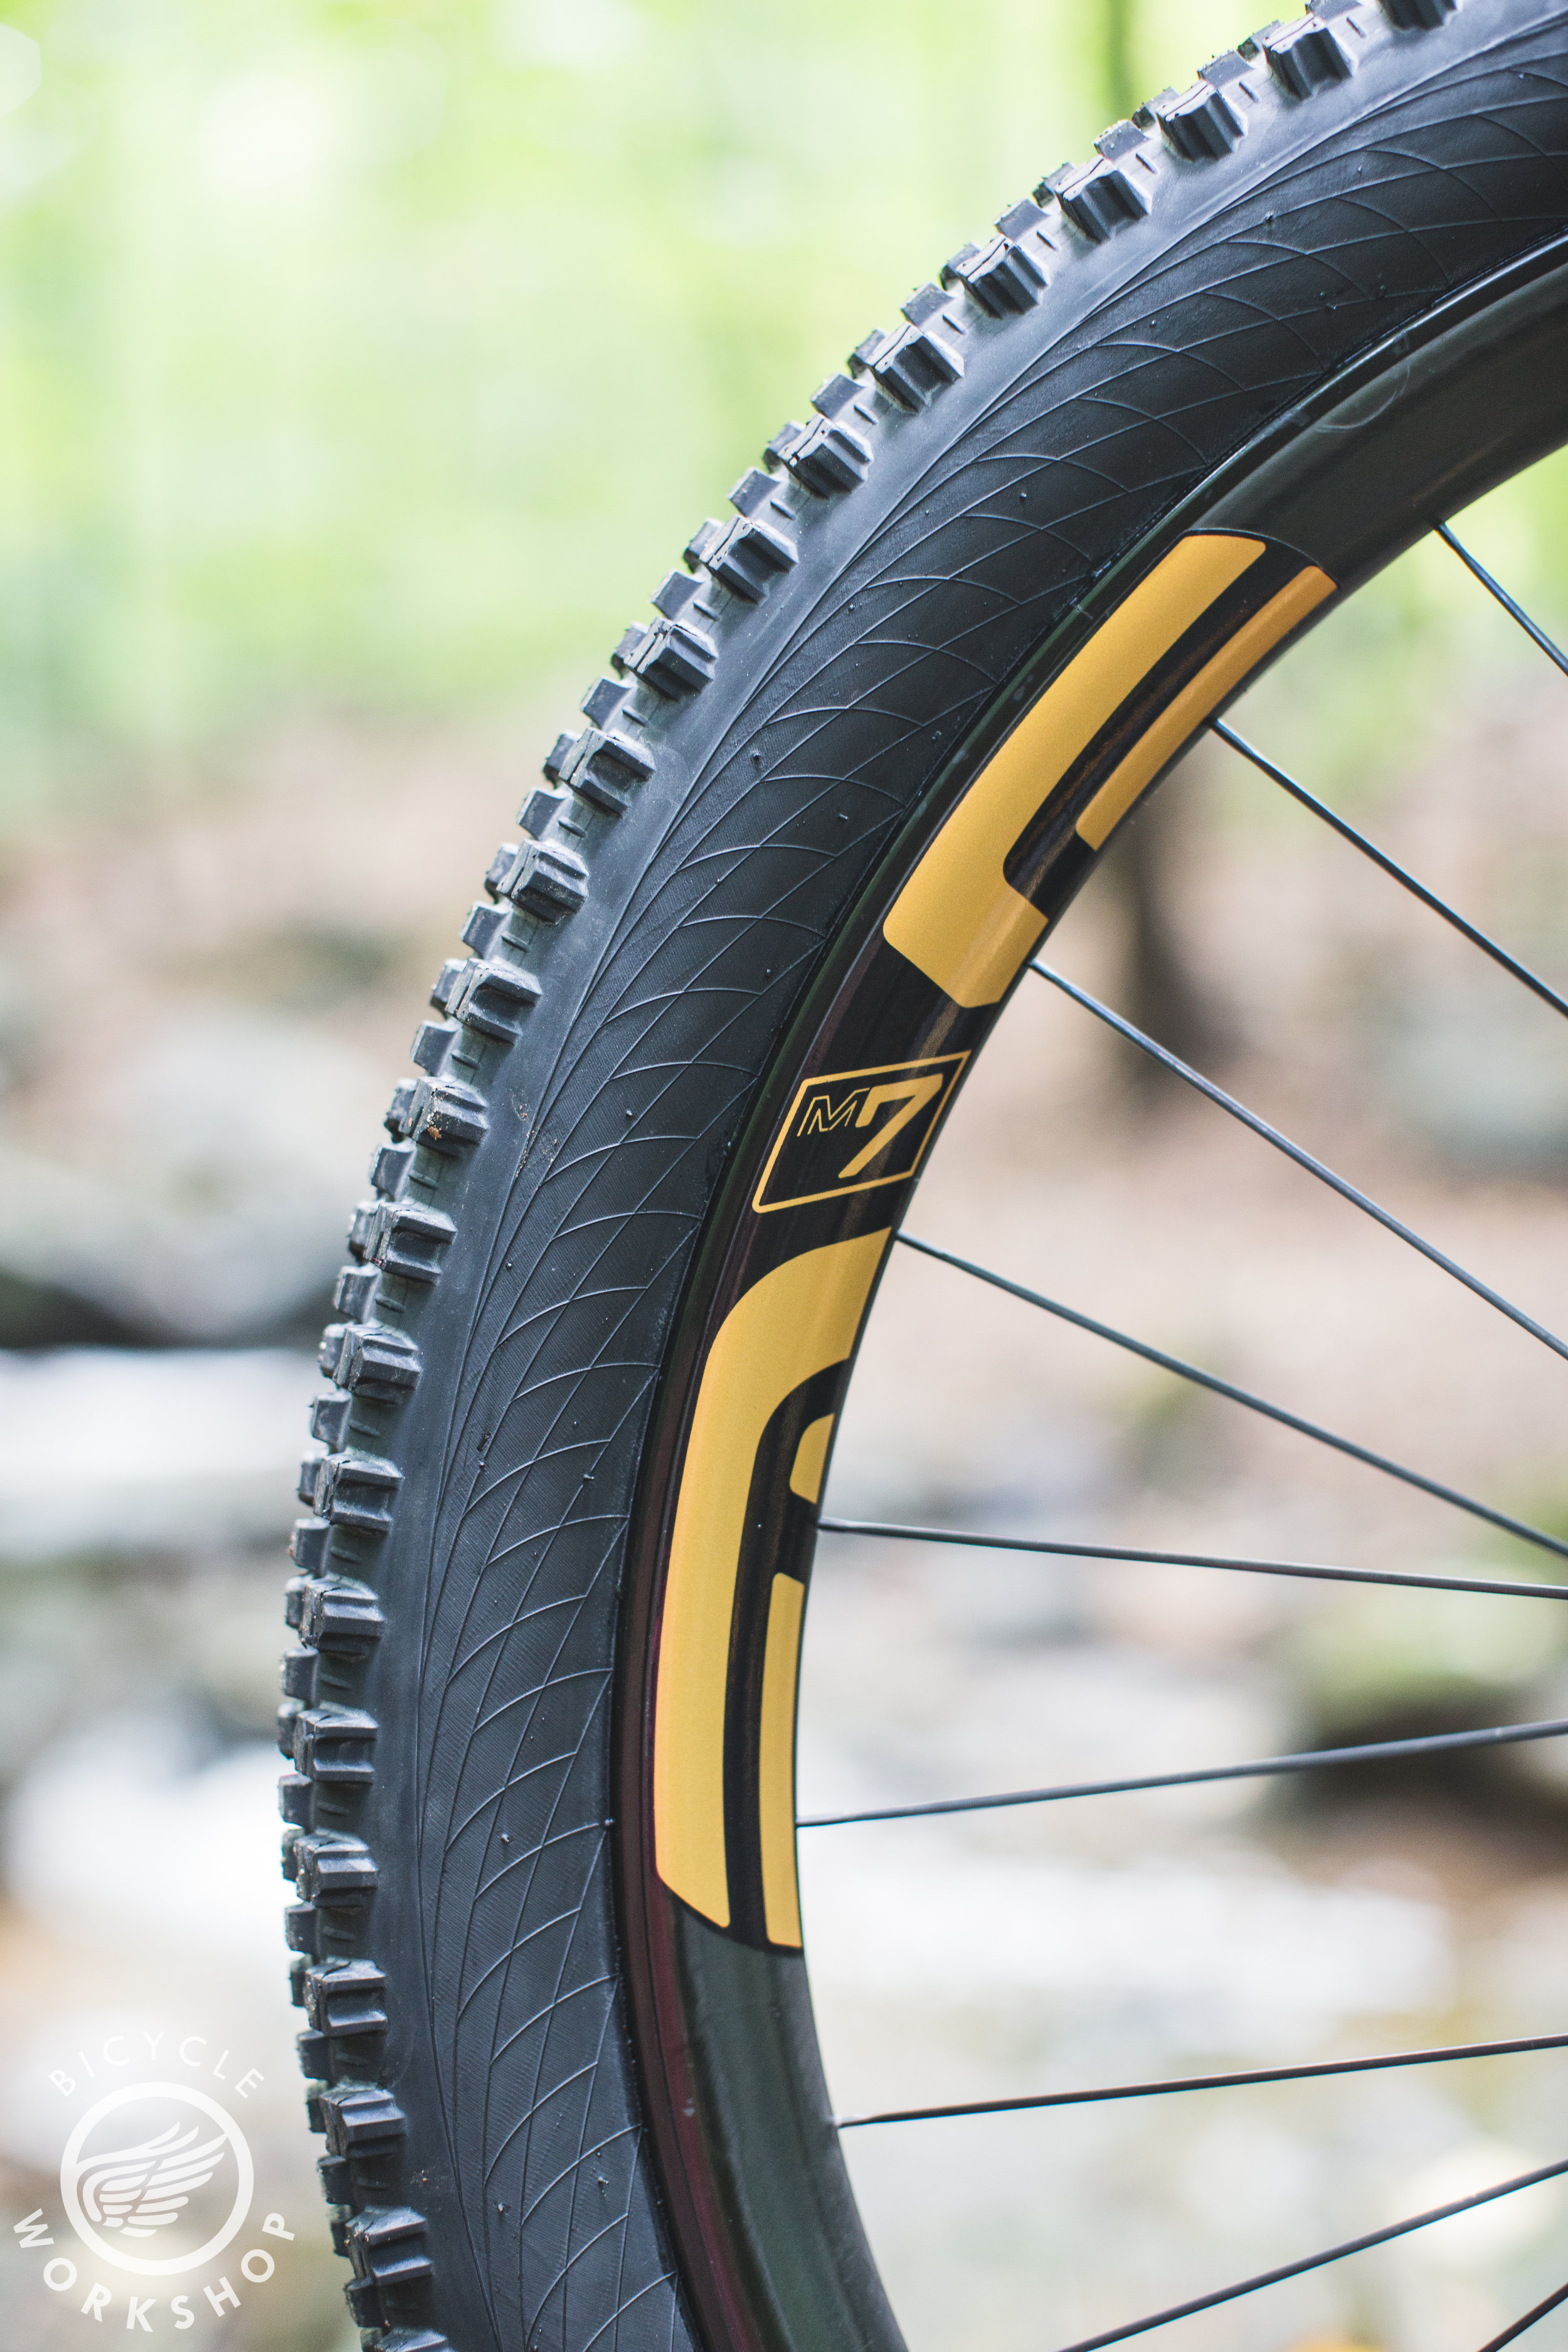 Enve 735 rims, not too stiff and very durable